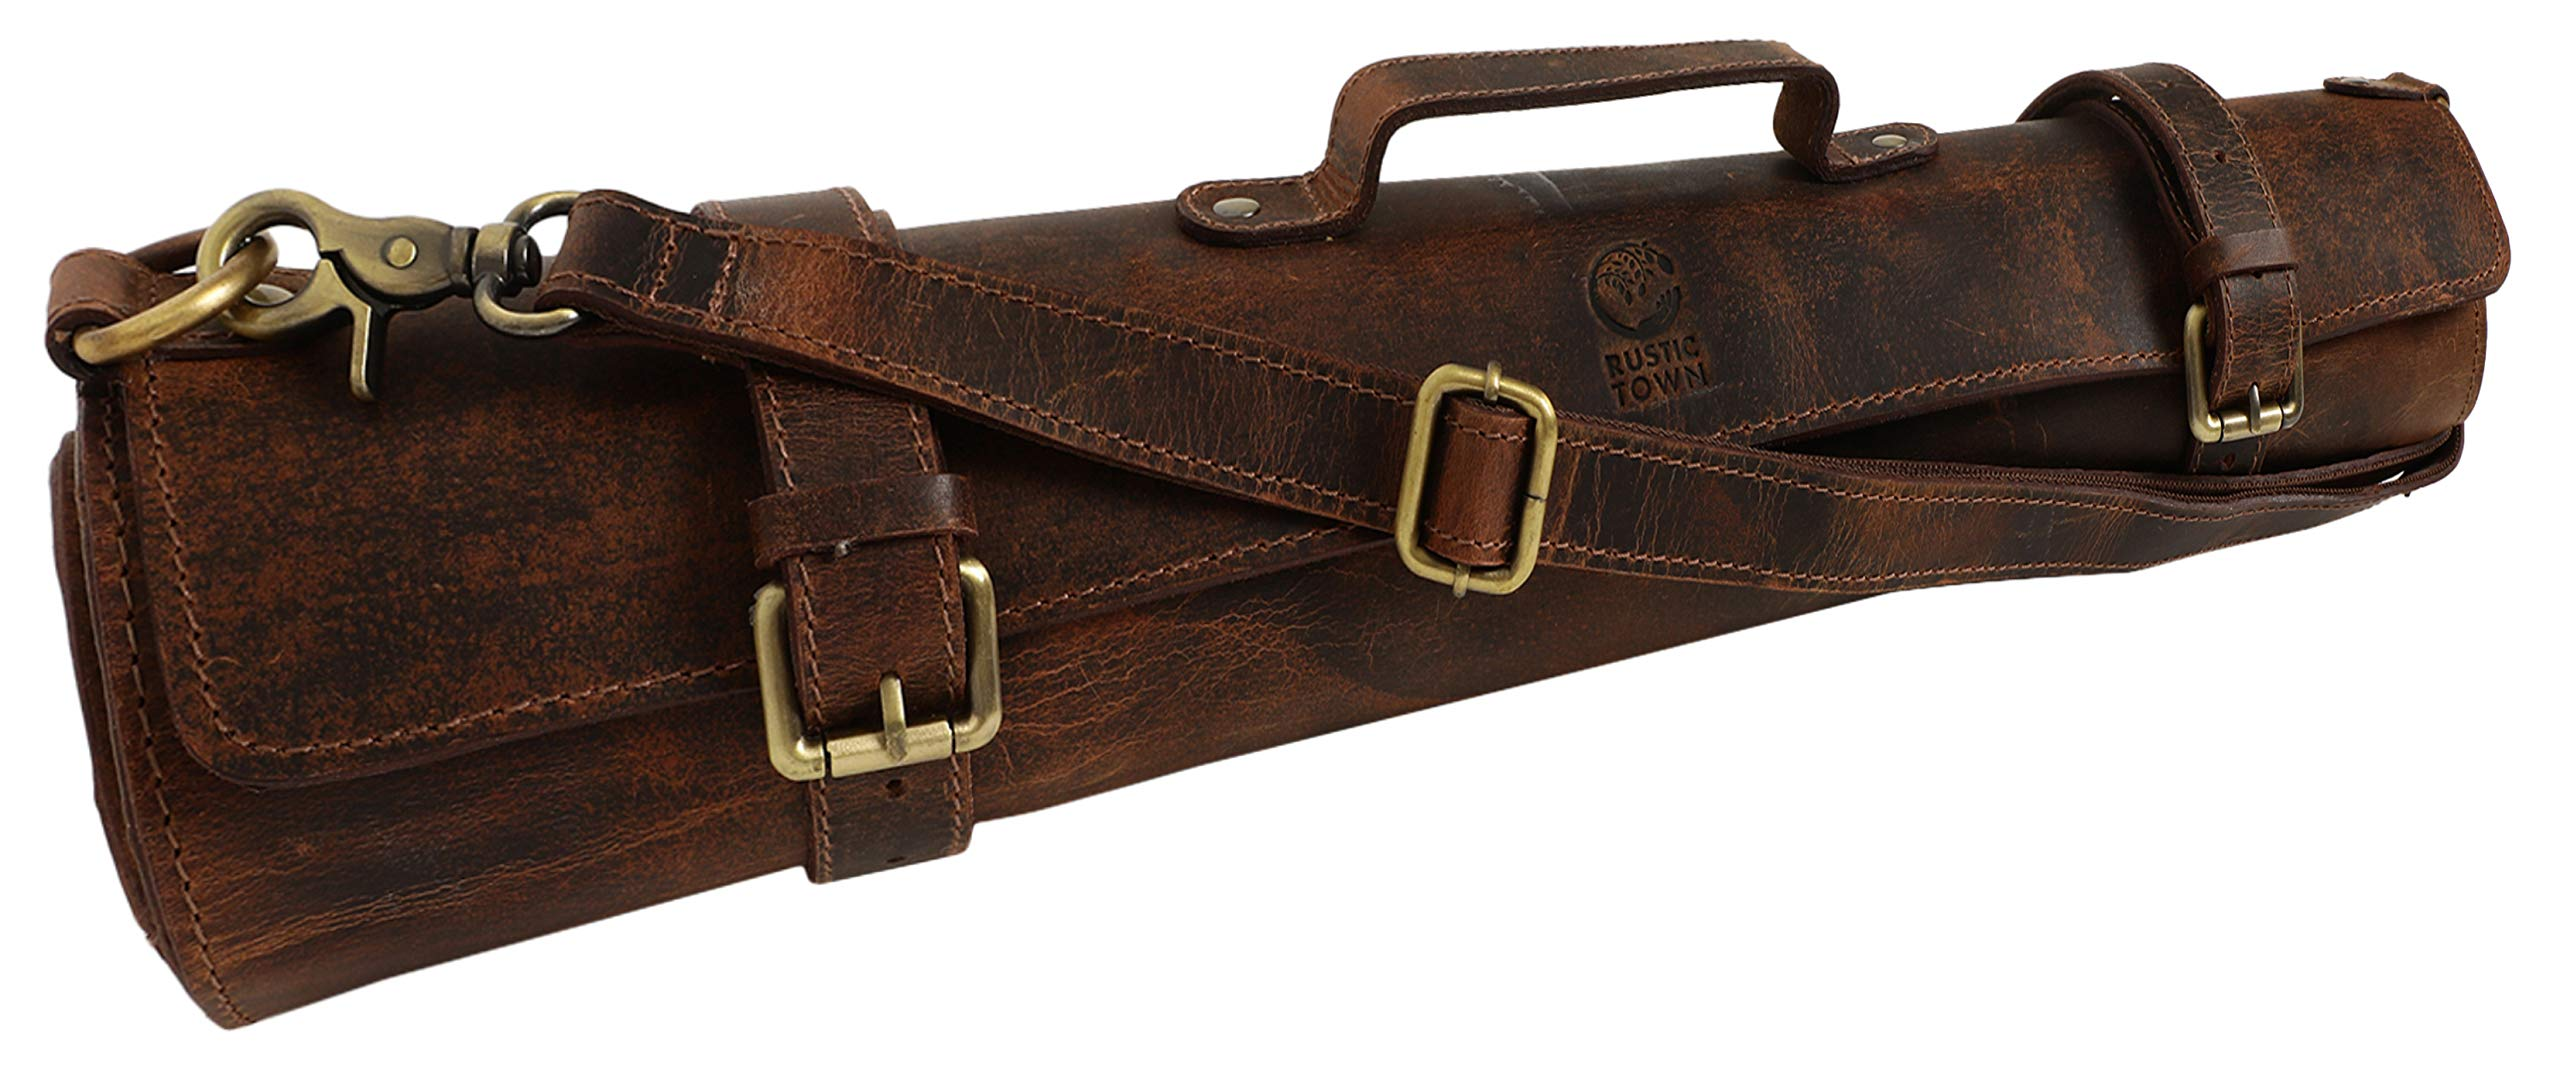 Rustic Town Leather Knife Roll Storage Bag | Elastic and Expandable 10 Pockets with Tool Pouch | Adjustable/Detachable Shoulder Strap | Travel-Friendly Chef Knife Case Roll (Brown)